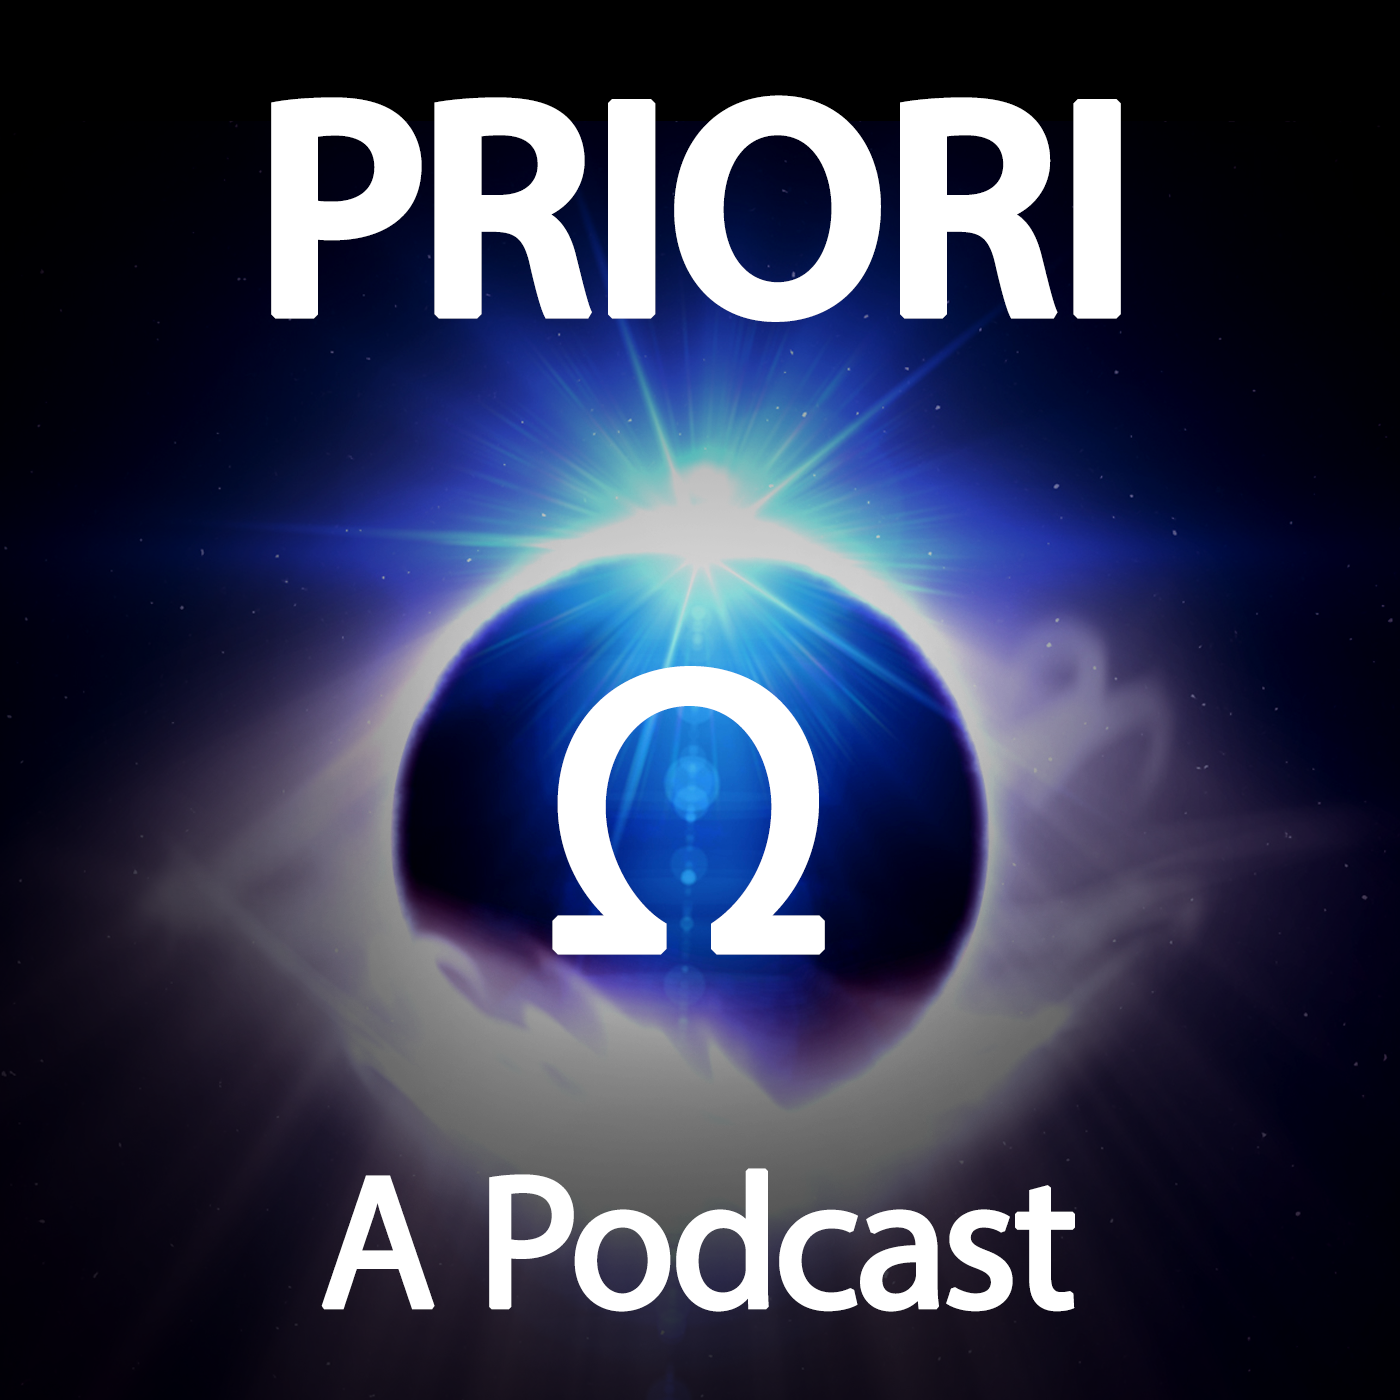 Priori - The Podcast